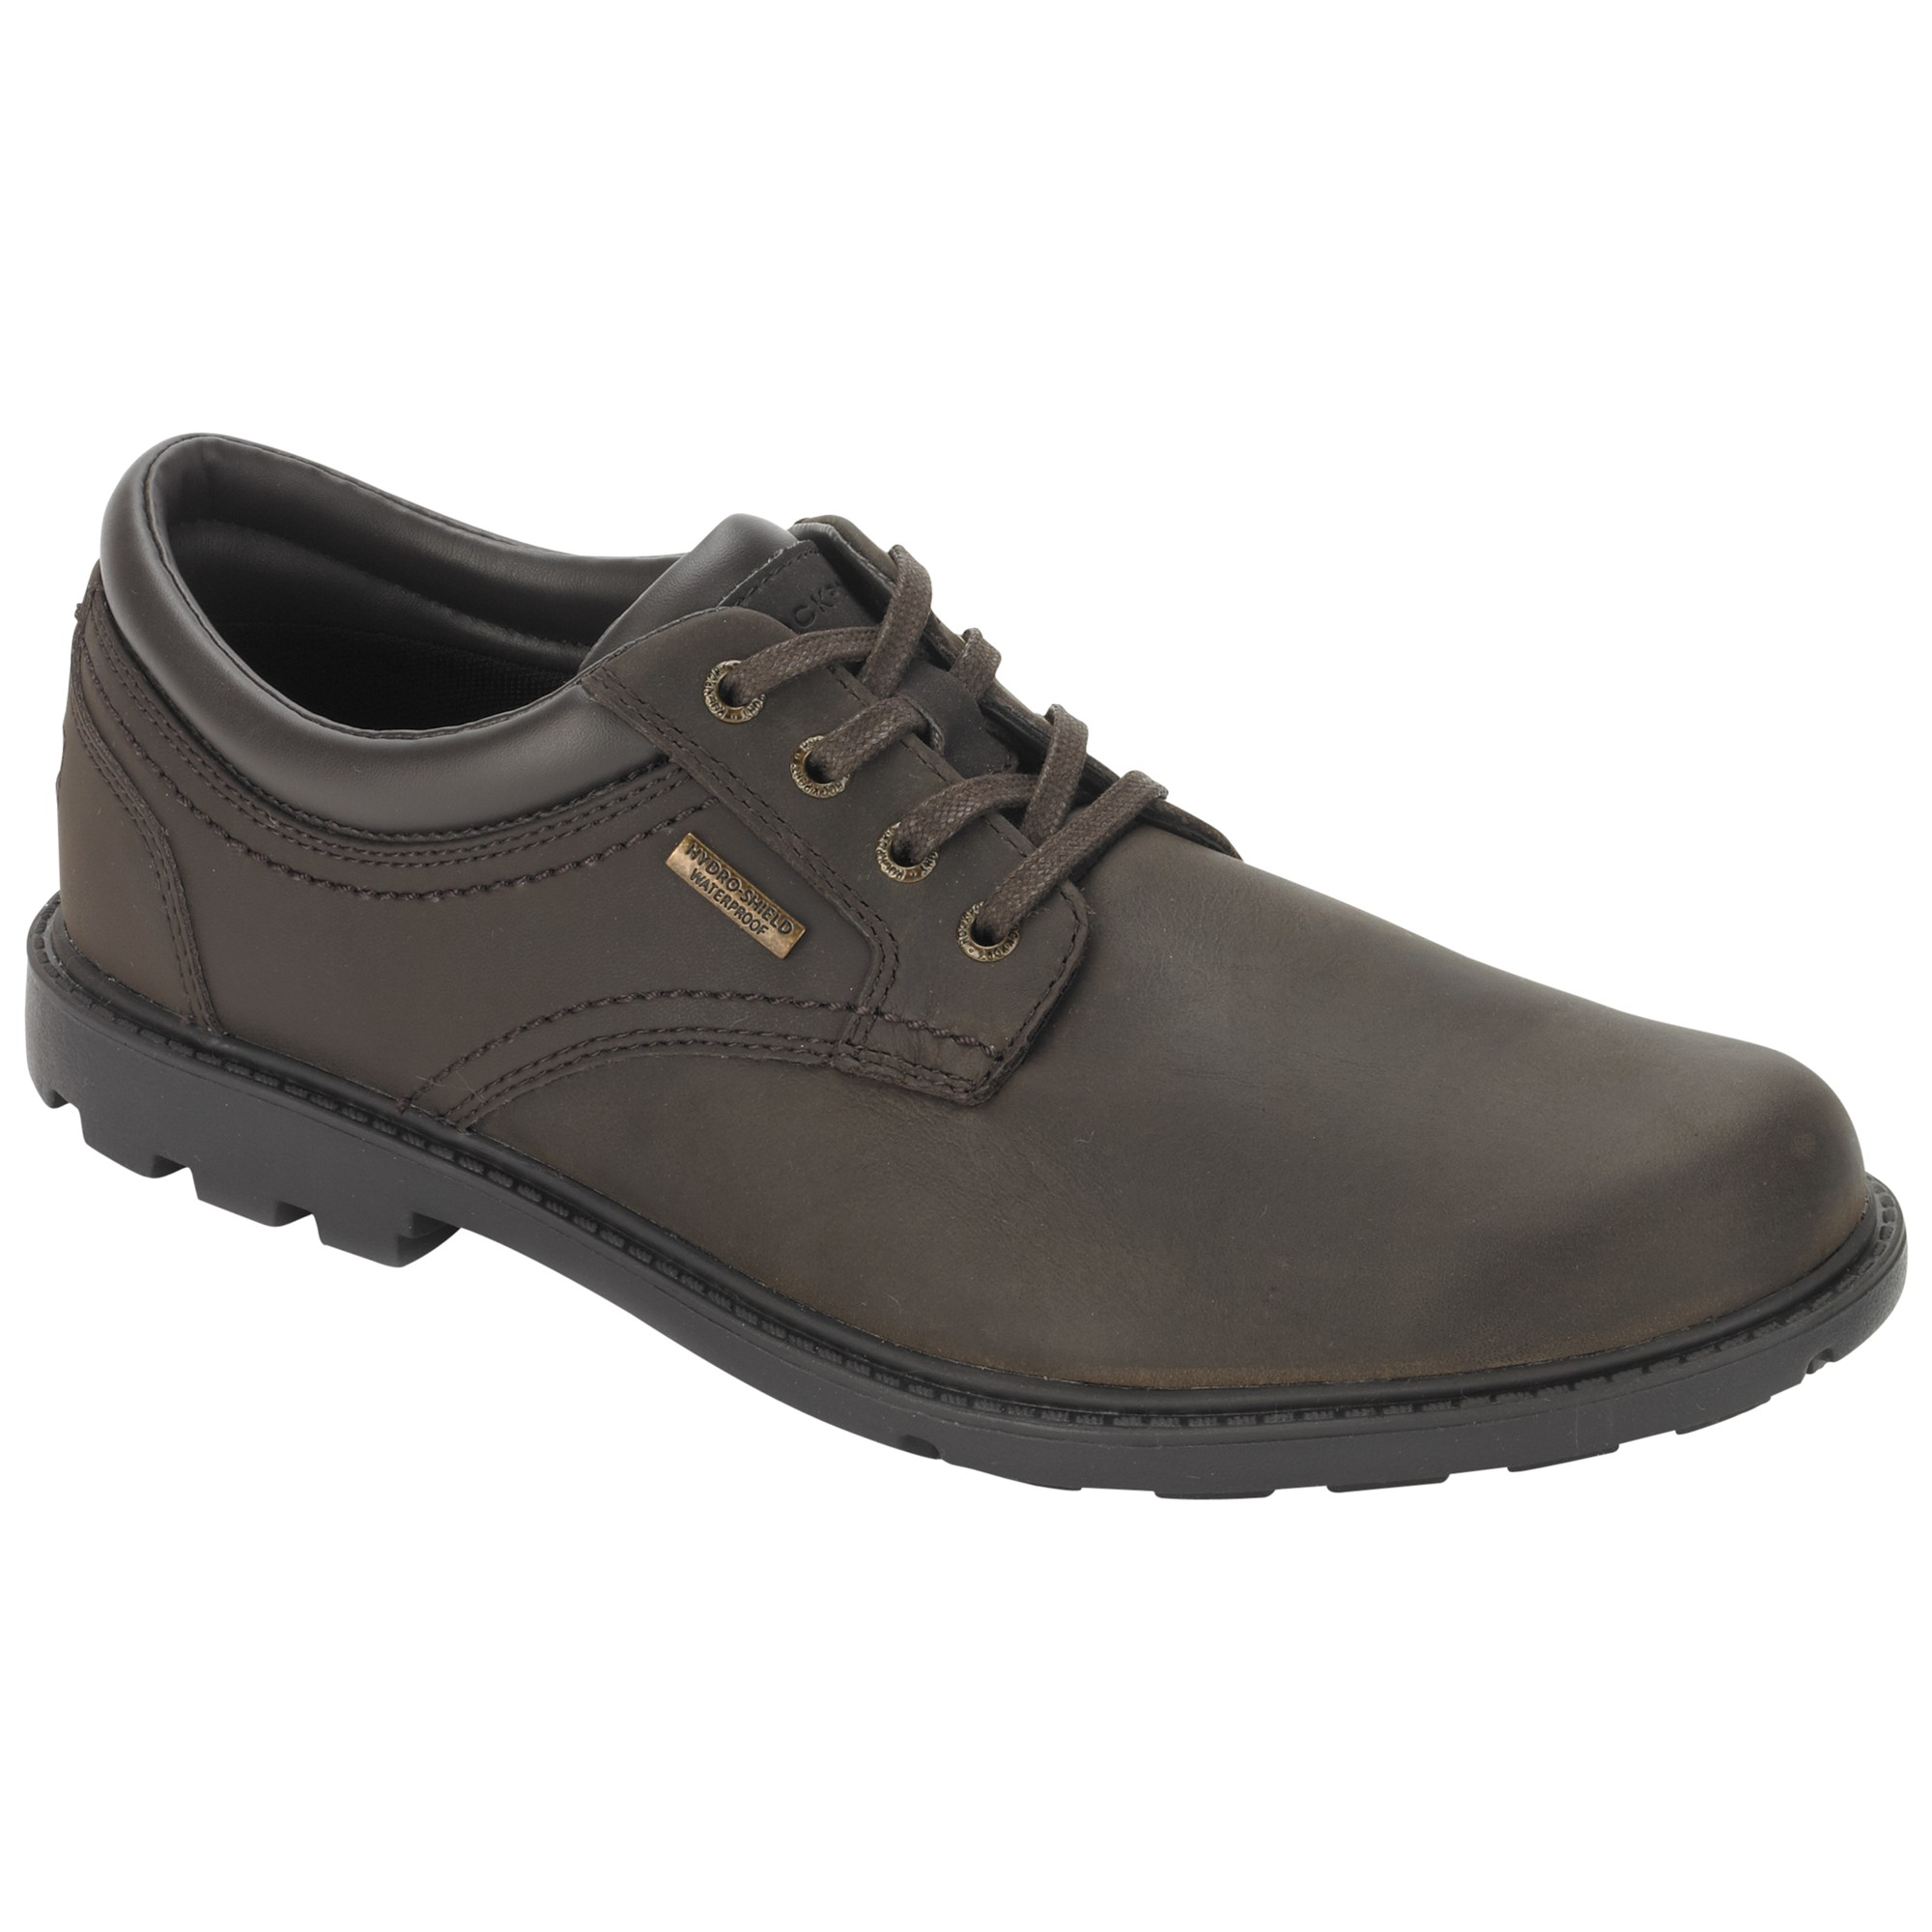 Rockport Waterproof Adiprene Shoes Uk